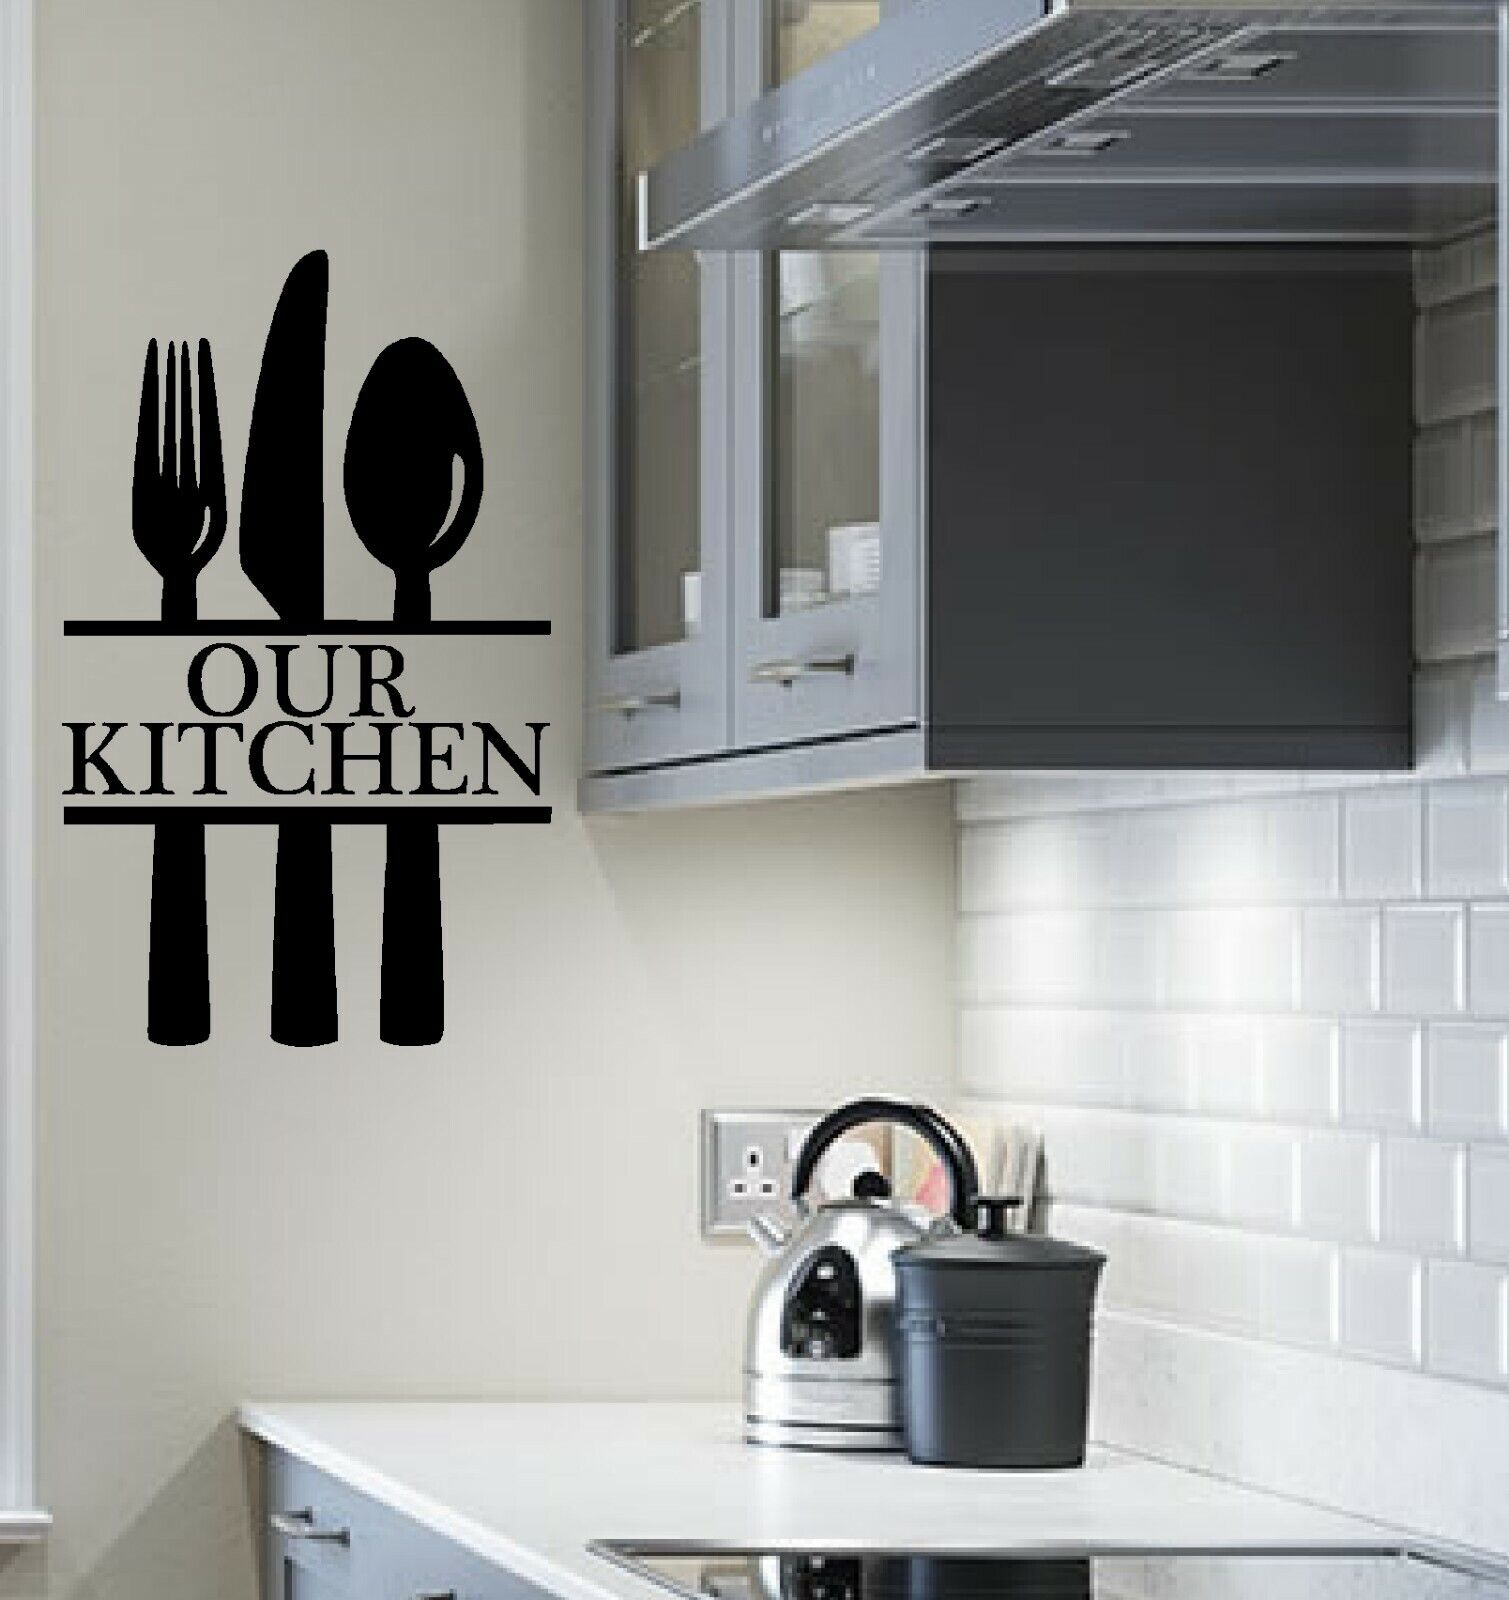 Home Decoration - Our kitchen wall art sticker cutlery decal stickers vinyl home decor